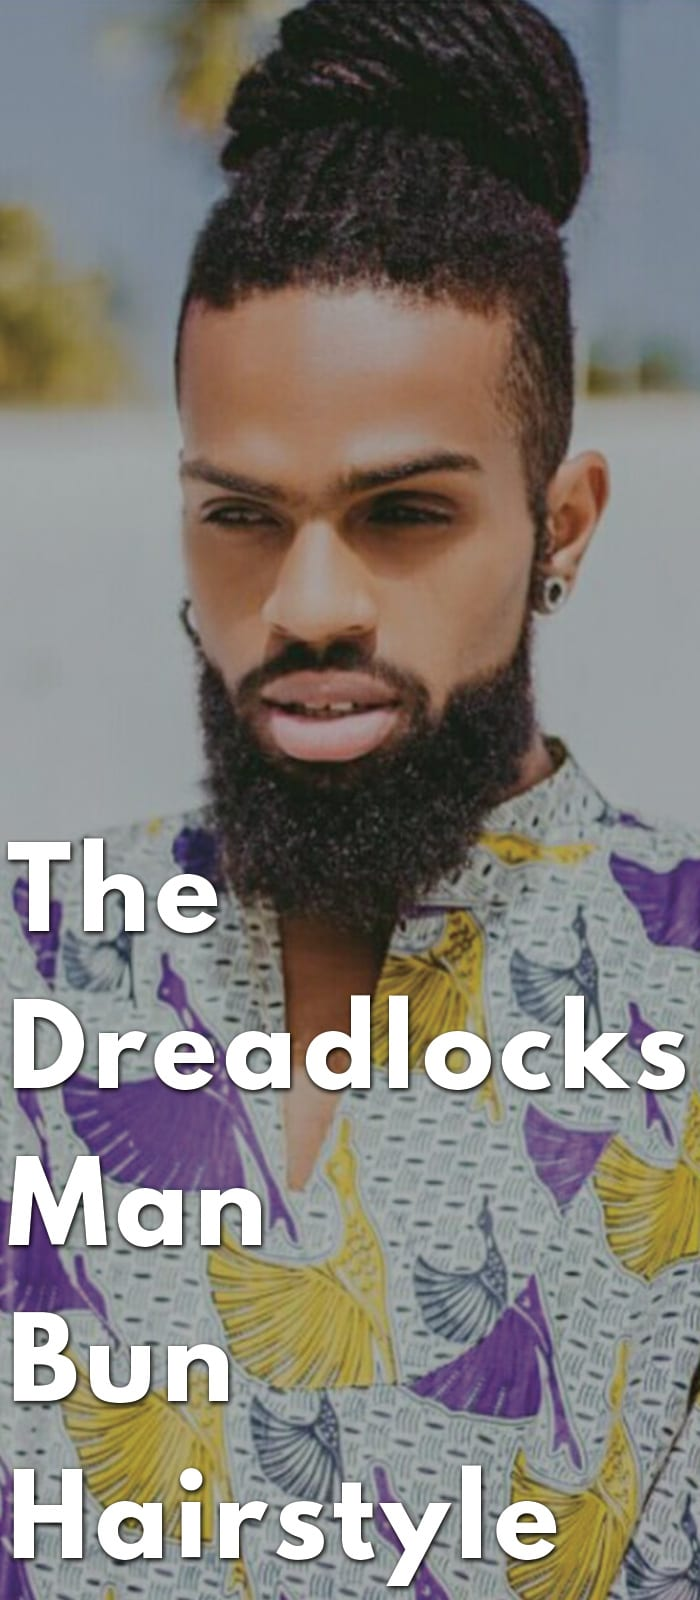 The Dreadlocks Man Bun Hairstyle